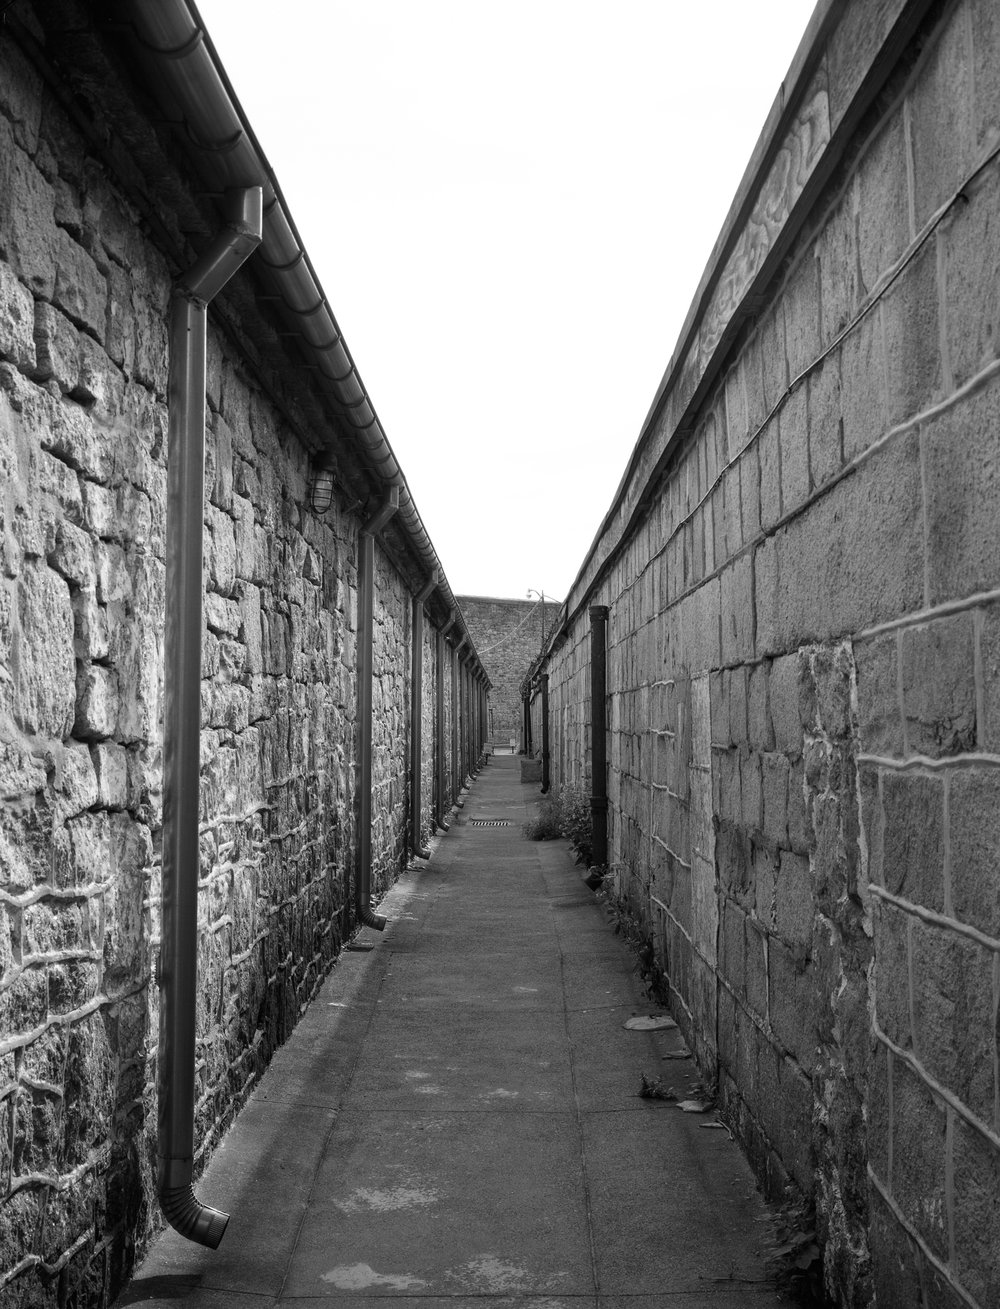 4x5_for_365_project_0273_esp_narrow_walkway.png